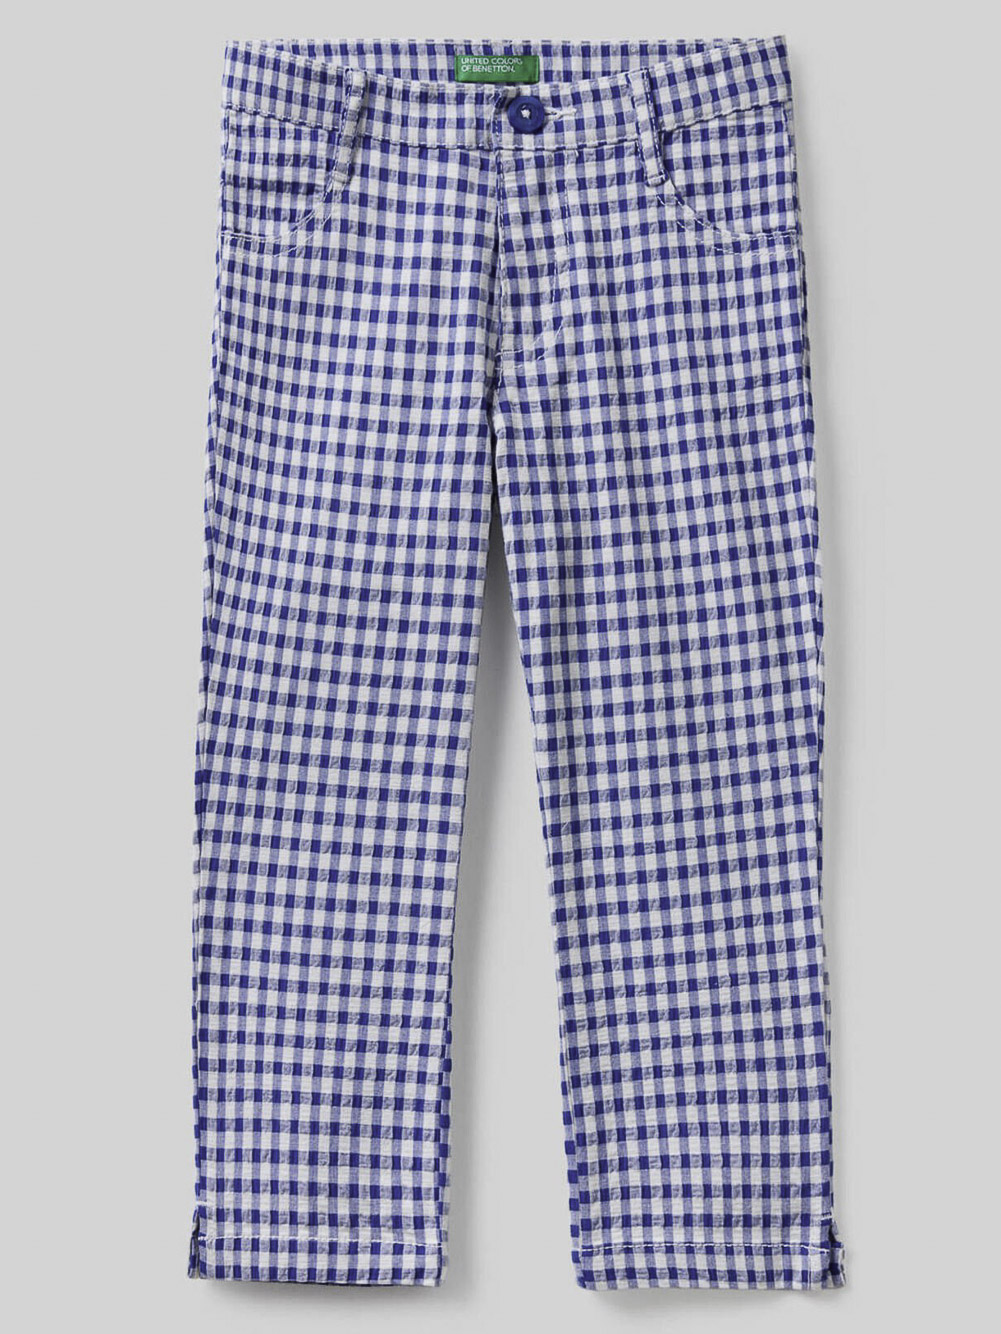 012 BENETTON Παντελόνι chinos 4AW257ML0 20P902